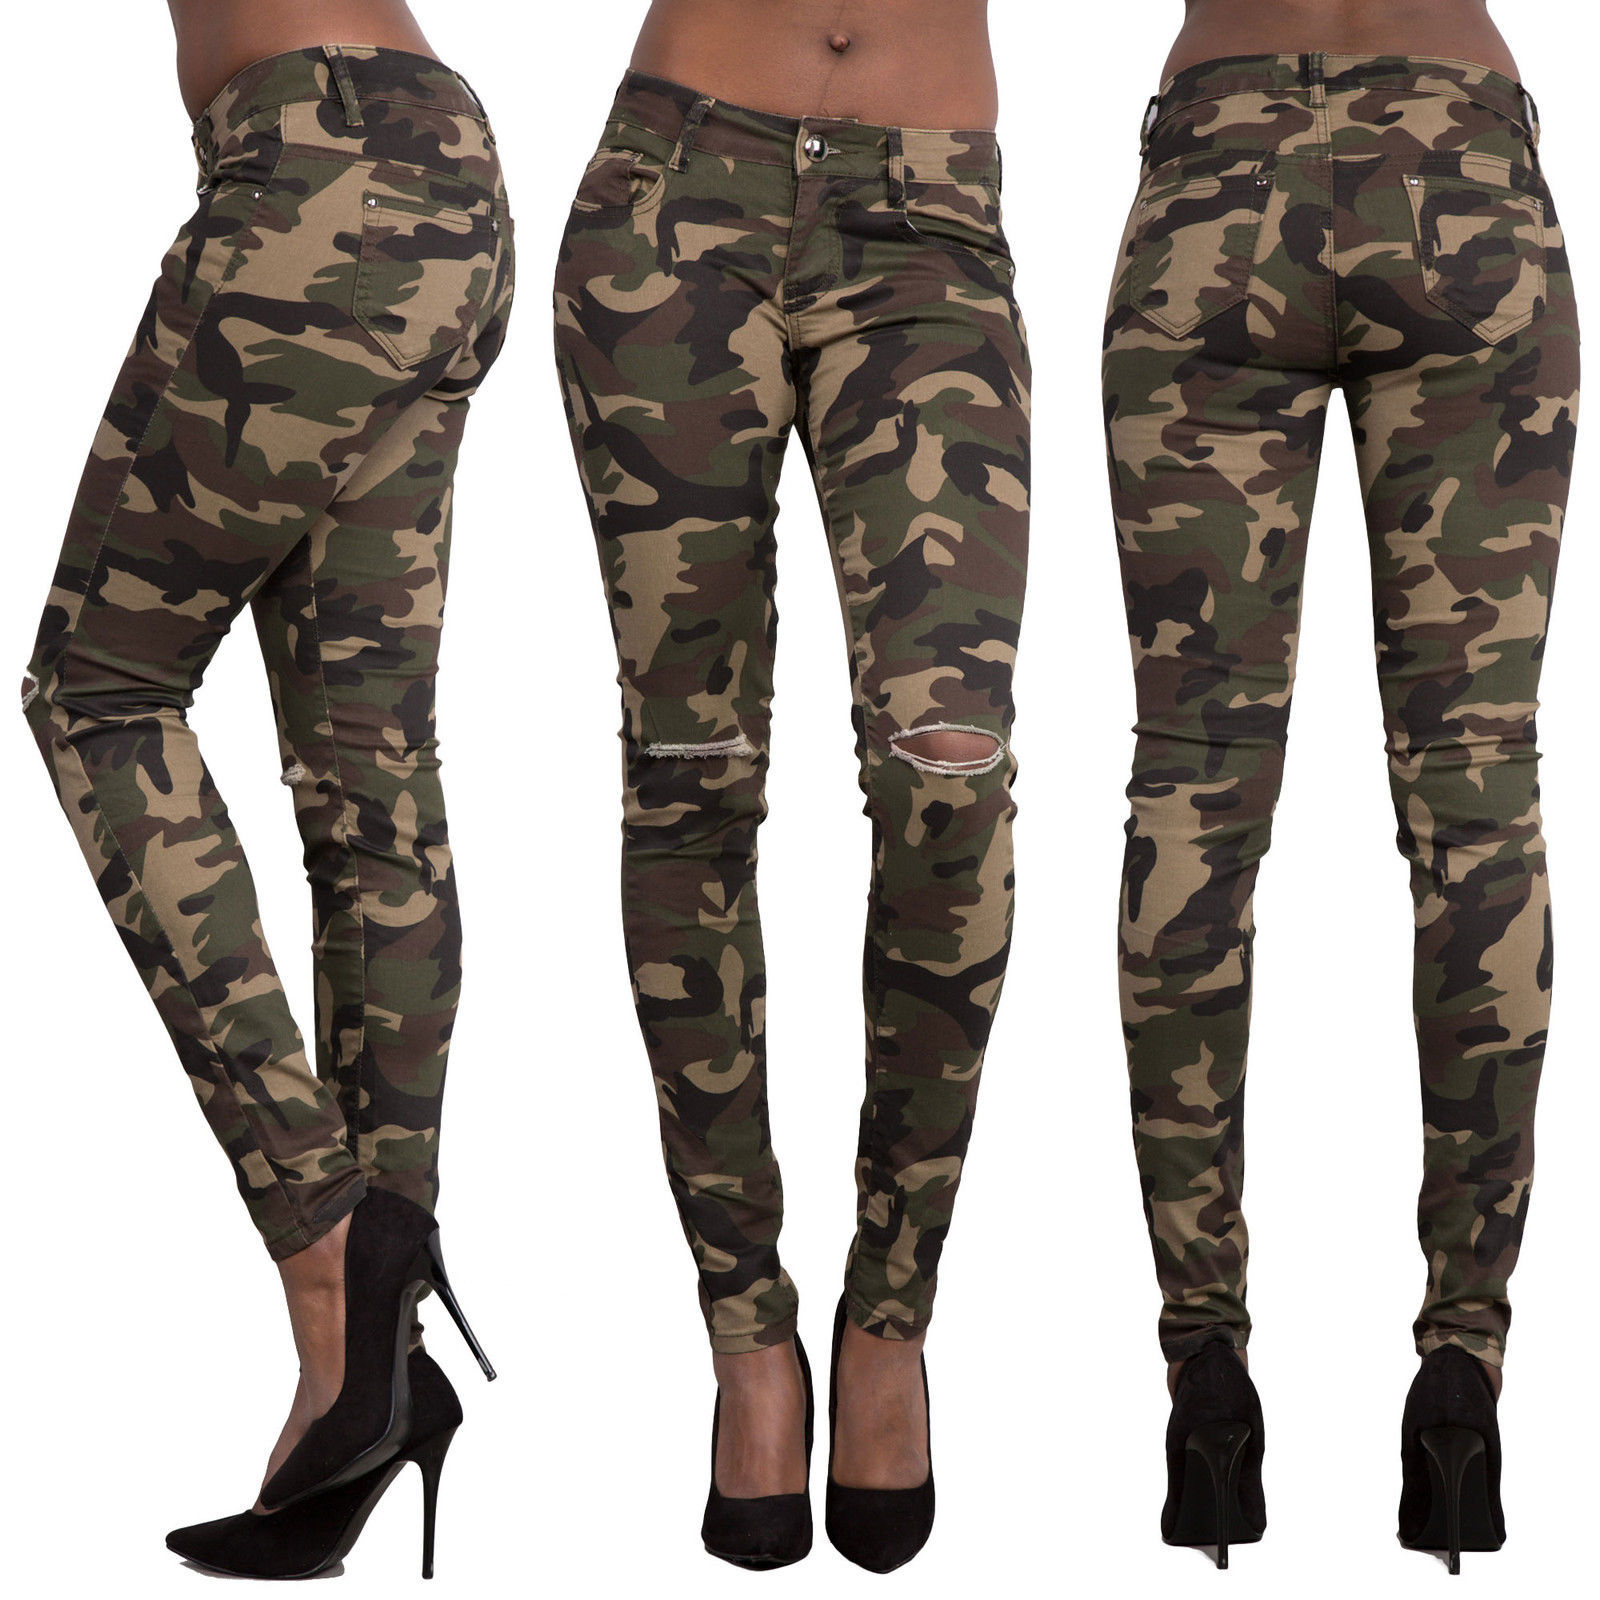 51a7a31439357 2018 Summer Camouflage Military Pants Women Slim Fit Female Jogger Pants  Ladies Fitness Workout Trousers WDC1265